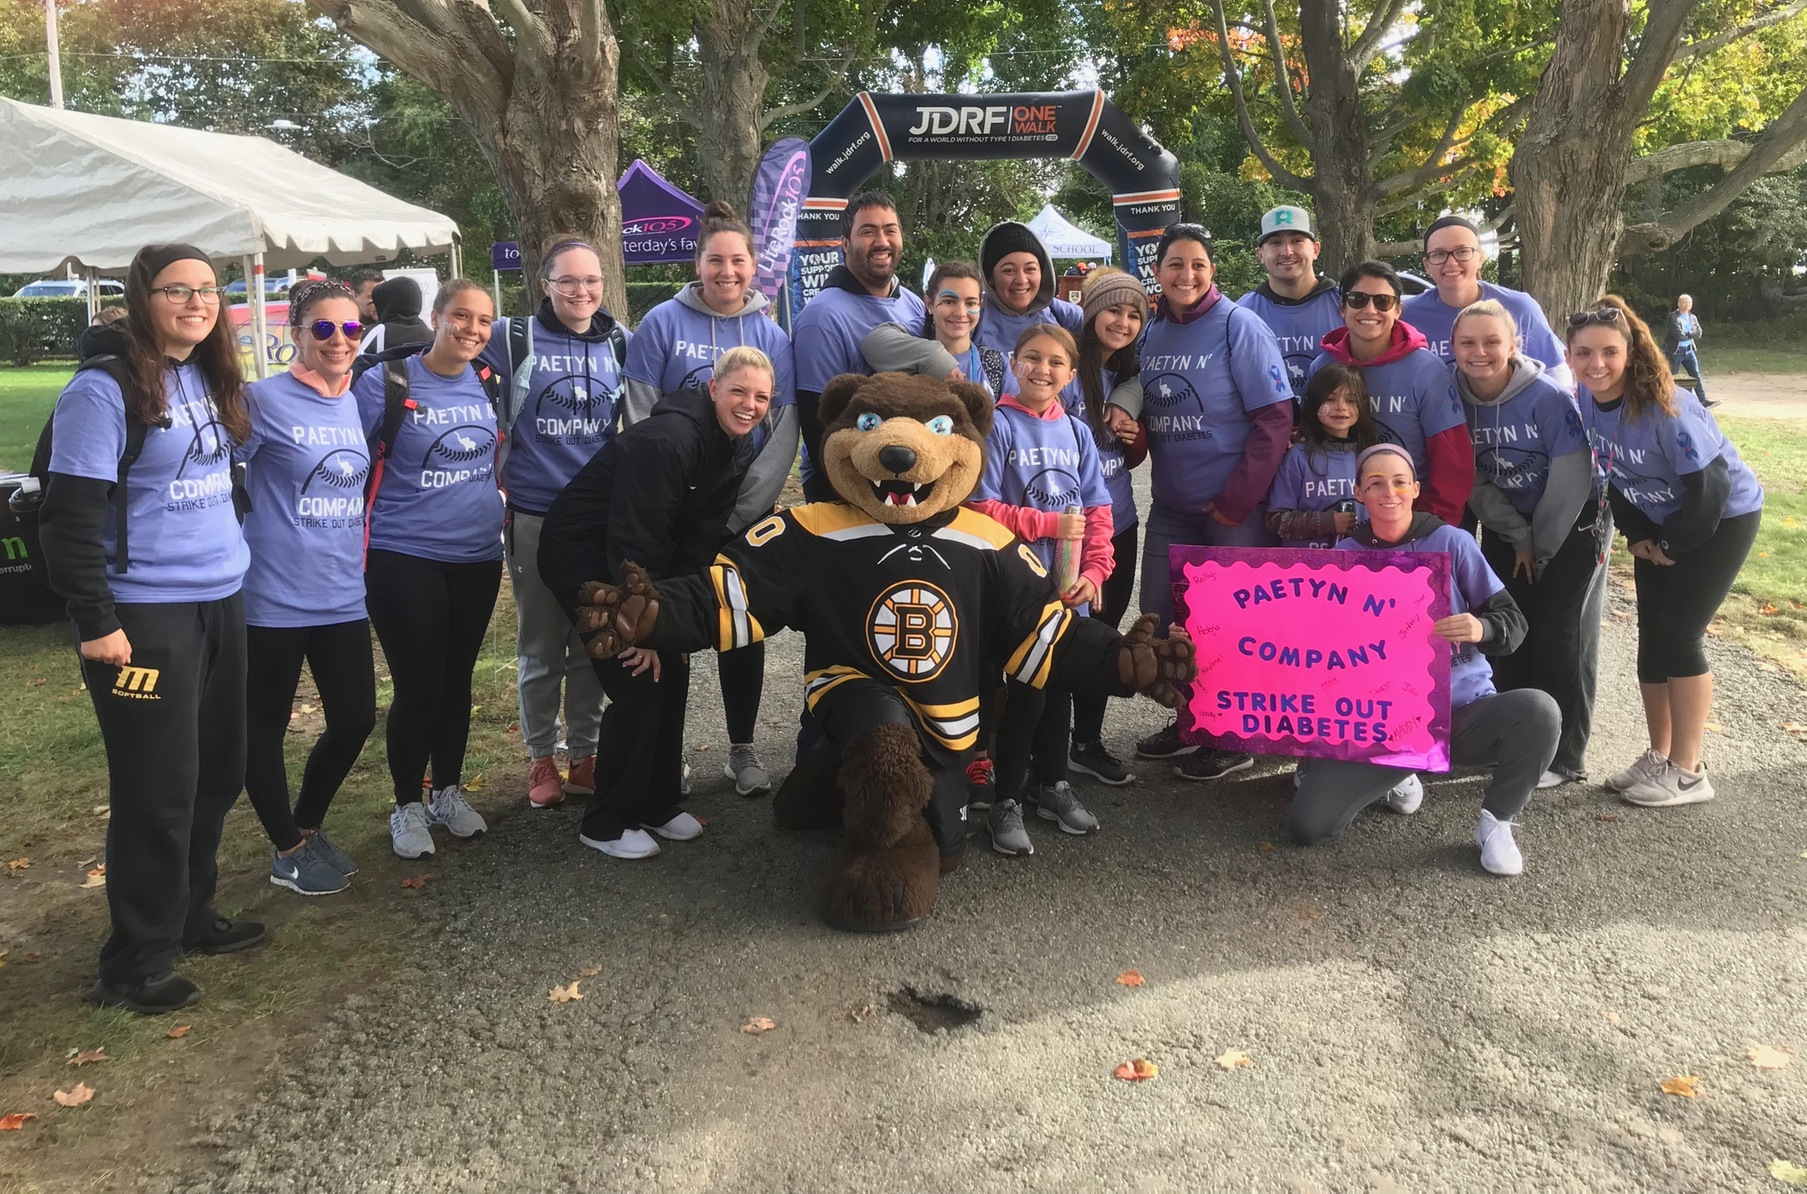 Softball Team Walks with Team IMPACT Member at JDRF One Walk